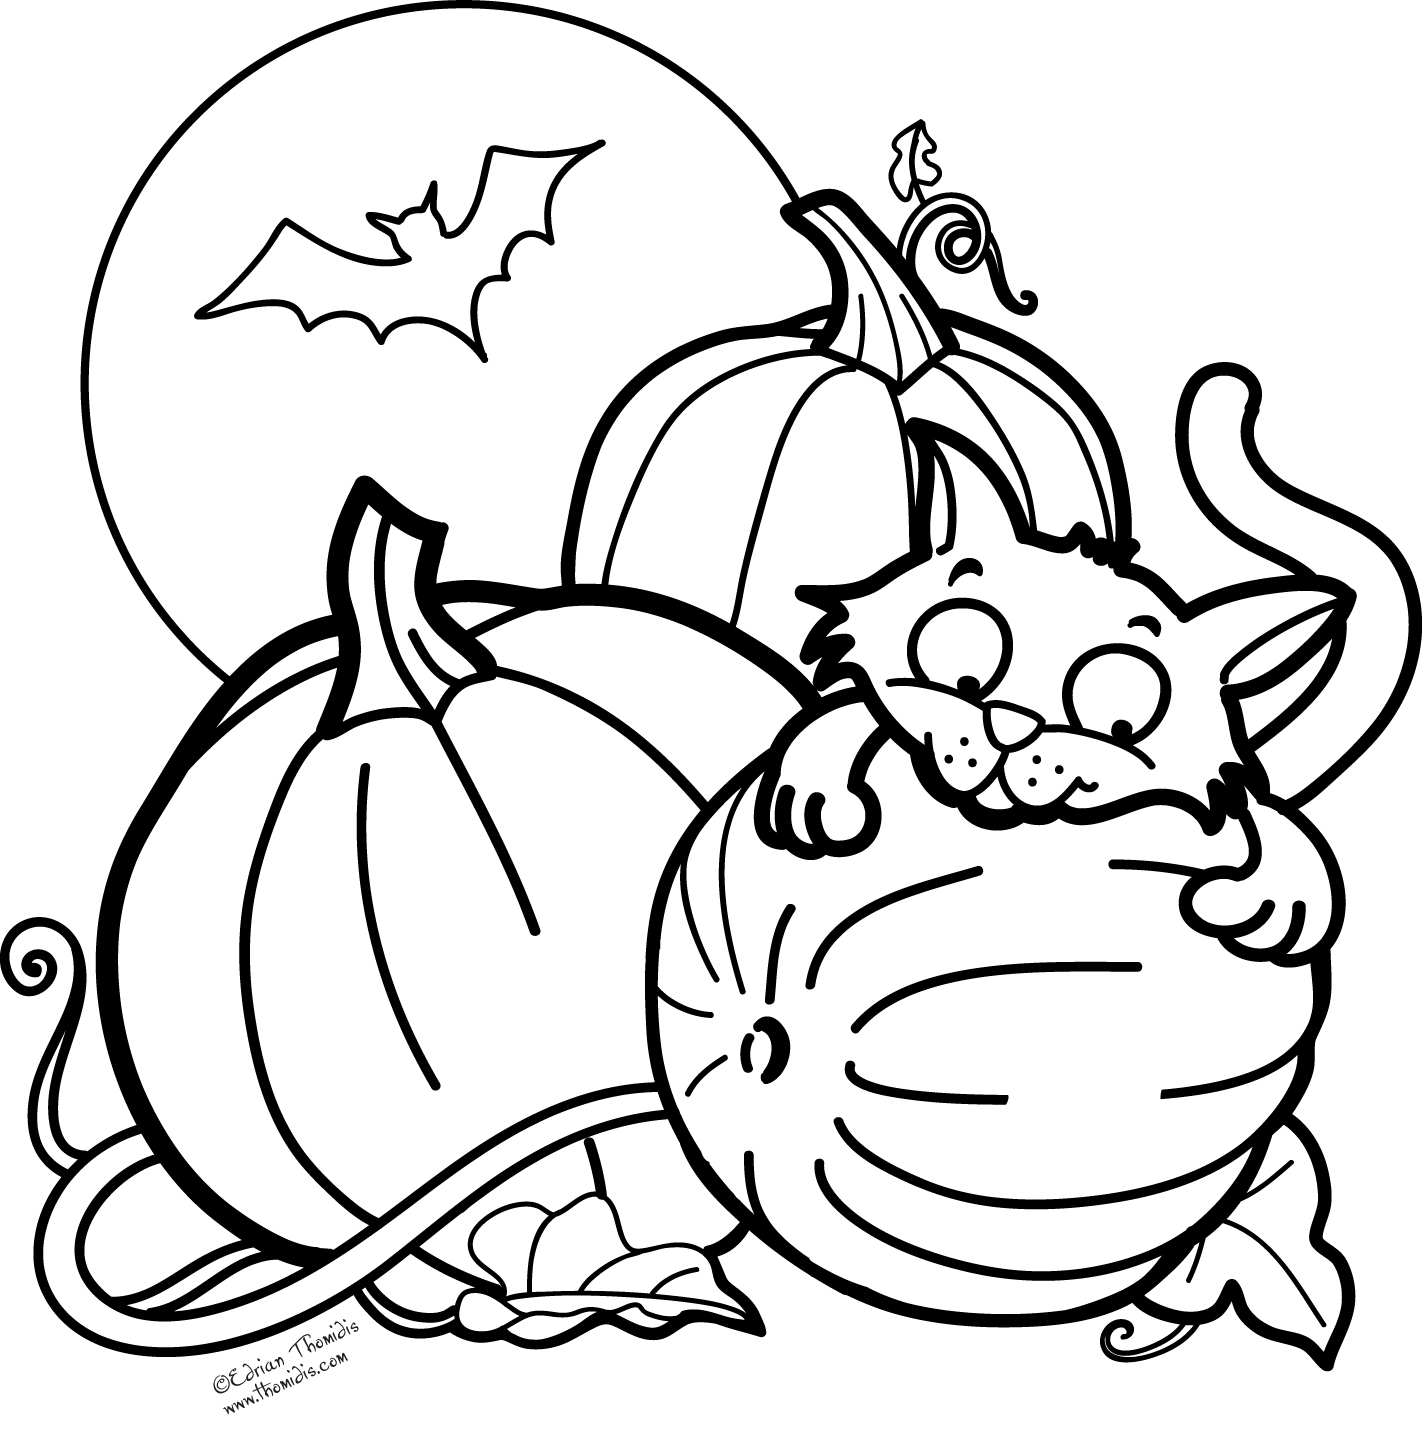 printable coloring pages halloween | A picture paints a thousand words: Pumpkin, Cat and a Bat ...